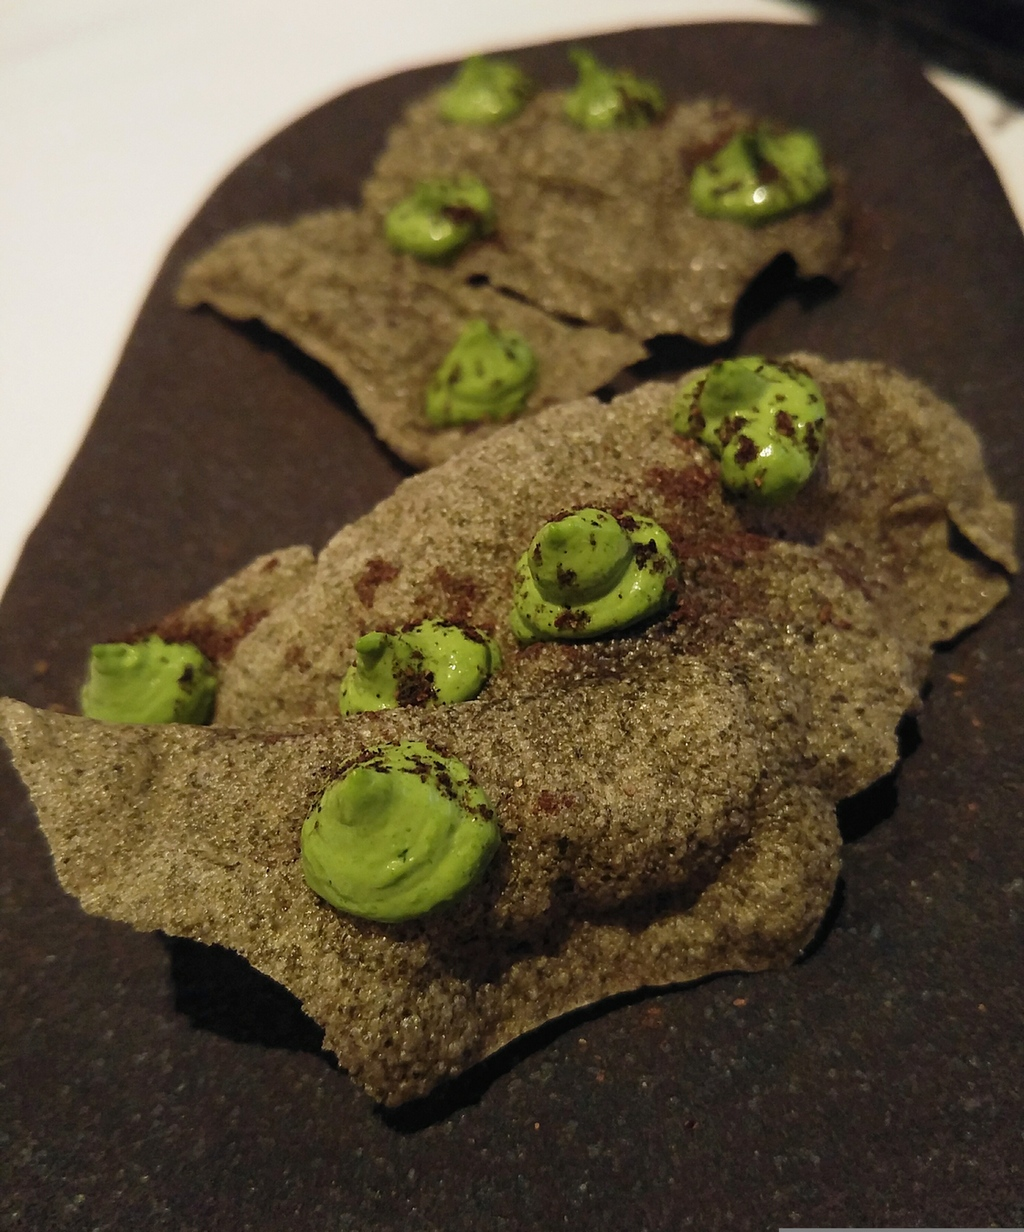 Urbane seaweed and oyster